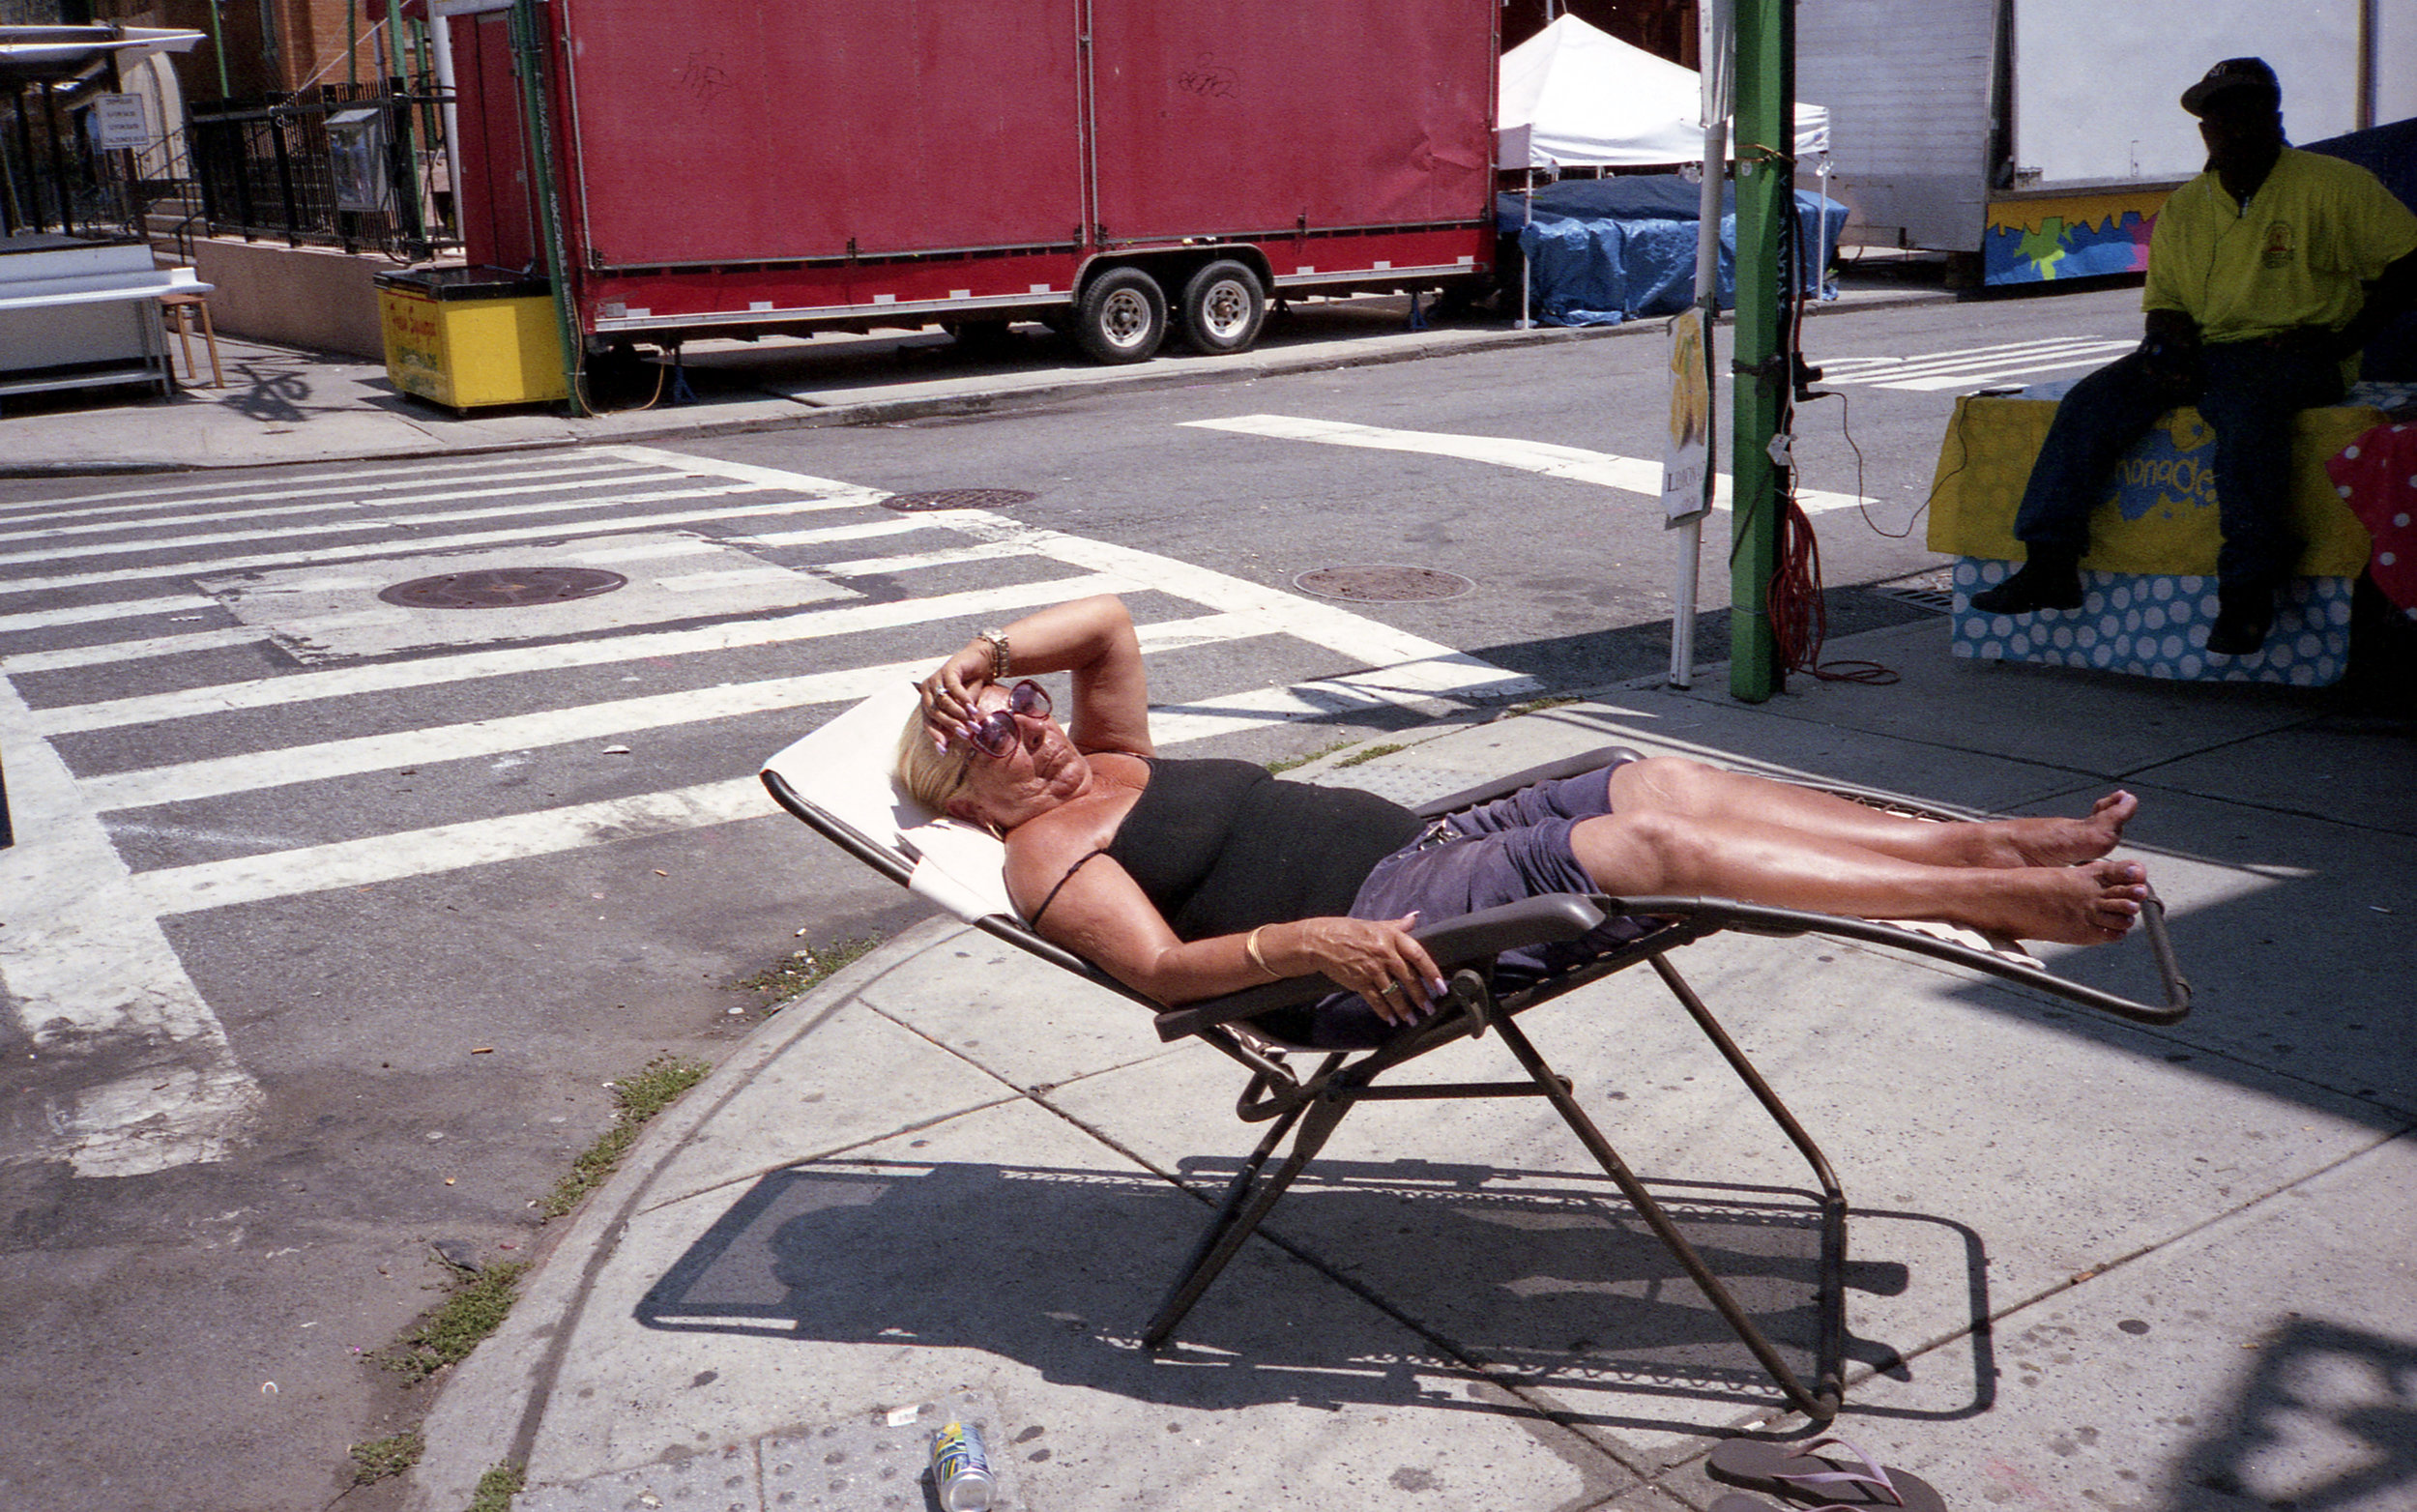 woman on lawnchair sidewalk.jpg